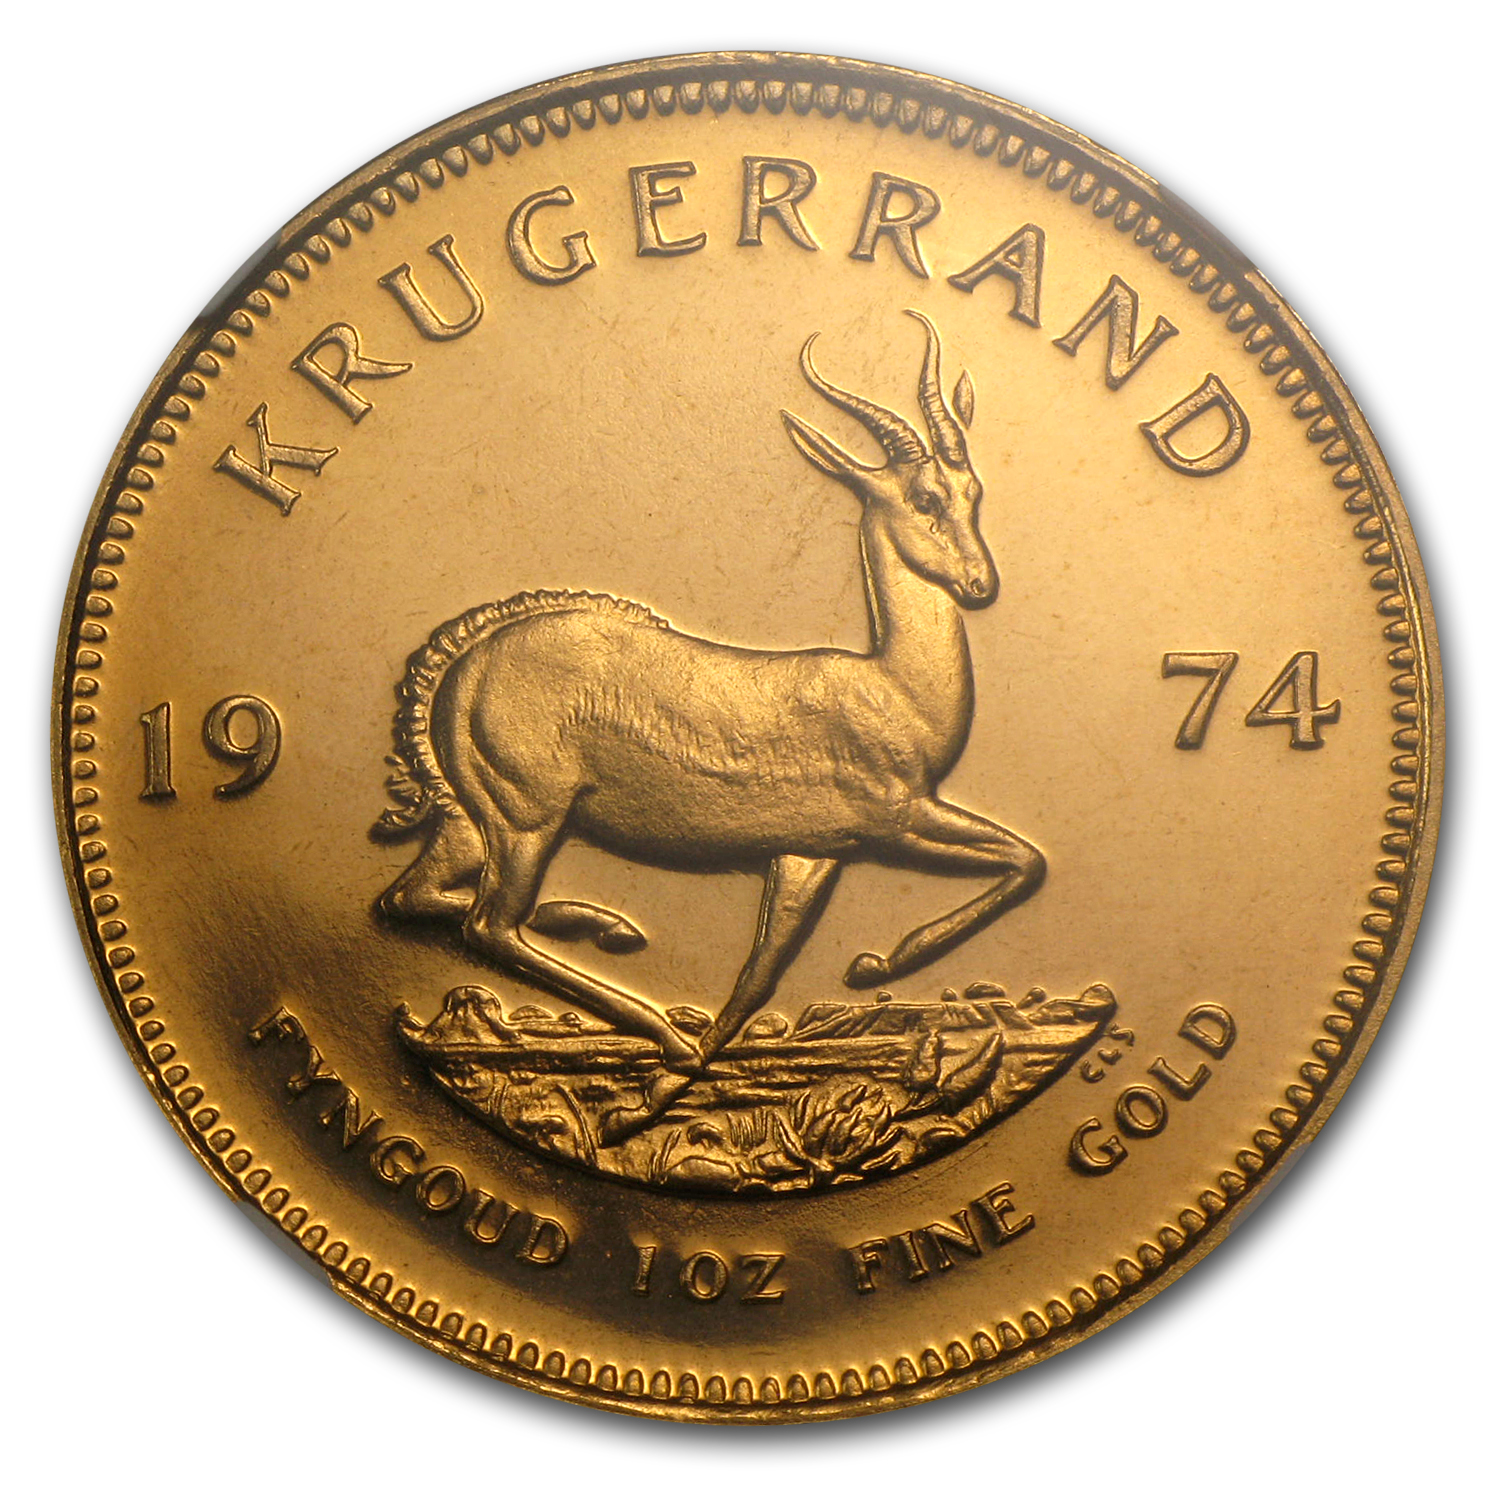 1974 South Africa 1 oz Gold Krugerrand PF-67 NGC